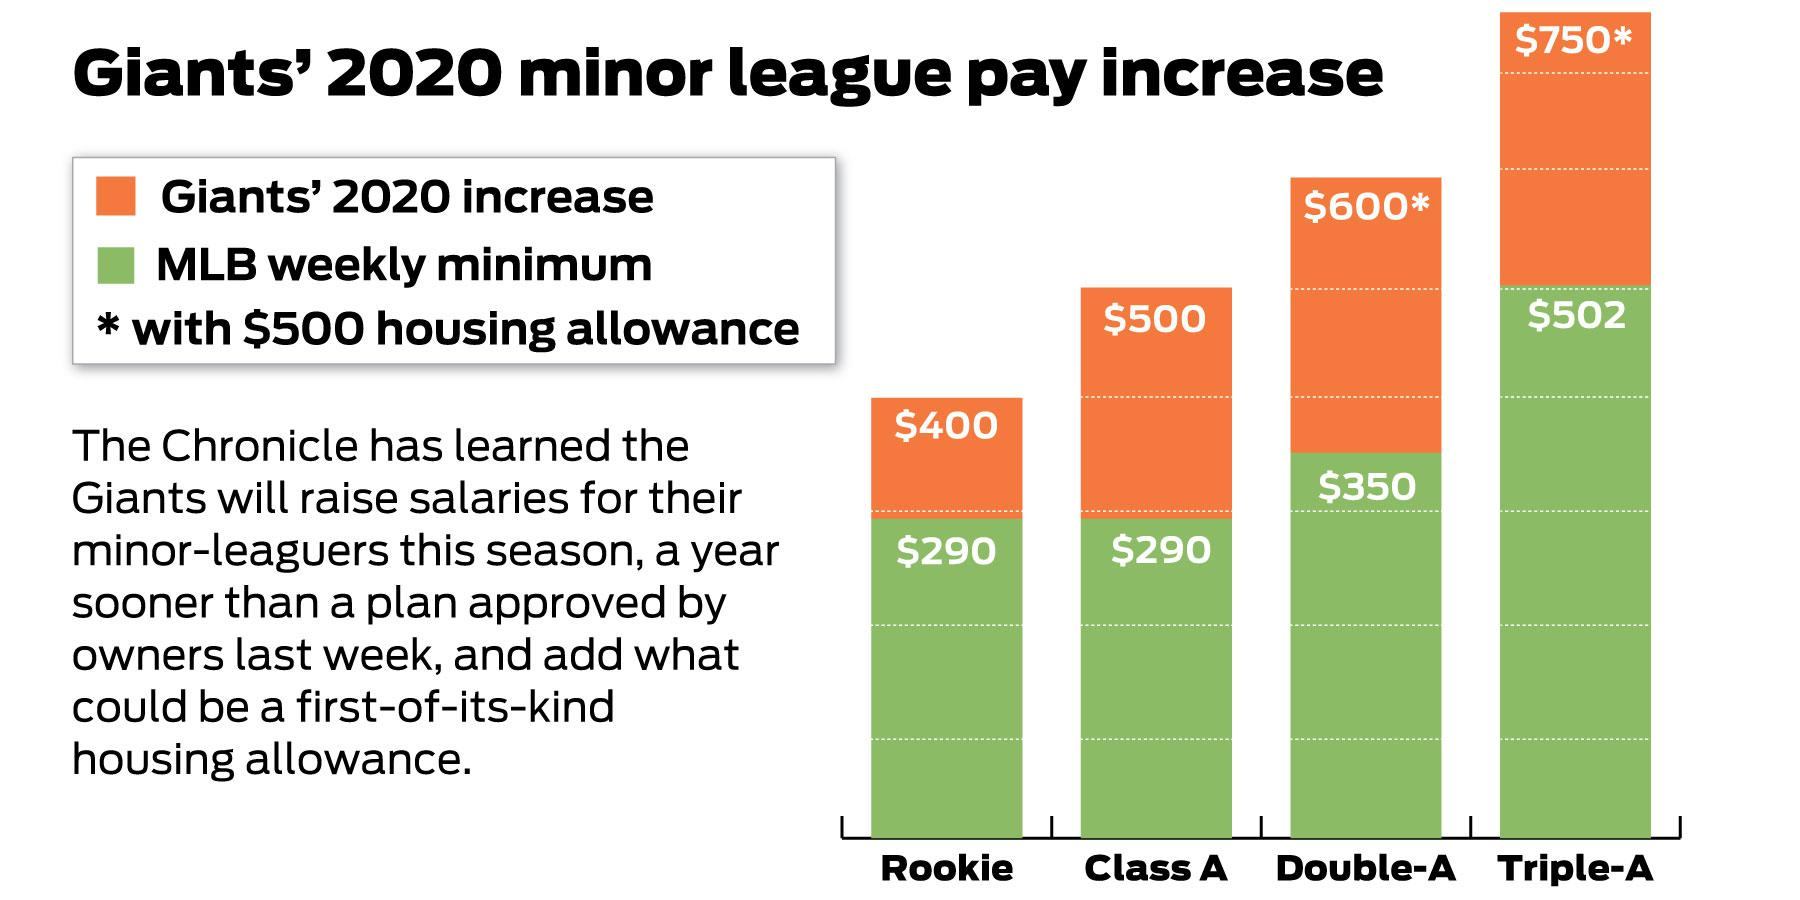 Giants go past MLB to raise minor-league pay in 2020, help with housing